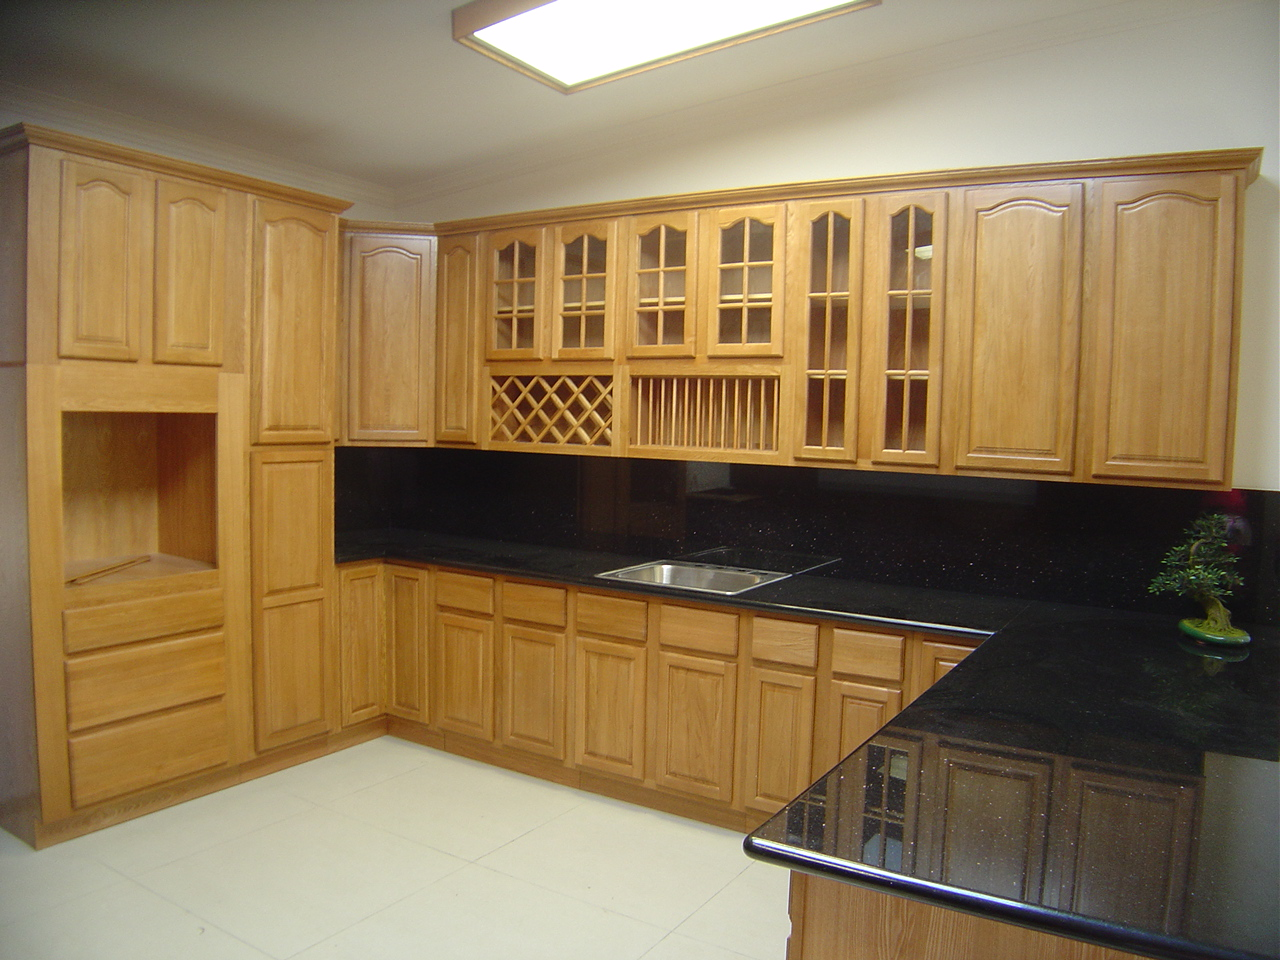 Storage furniture kitchen photo - 1